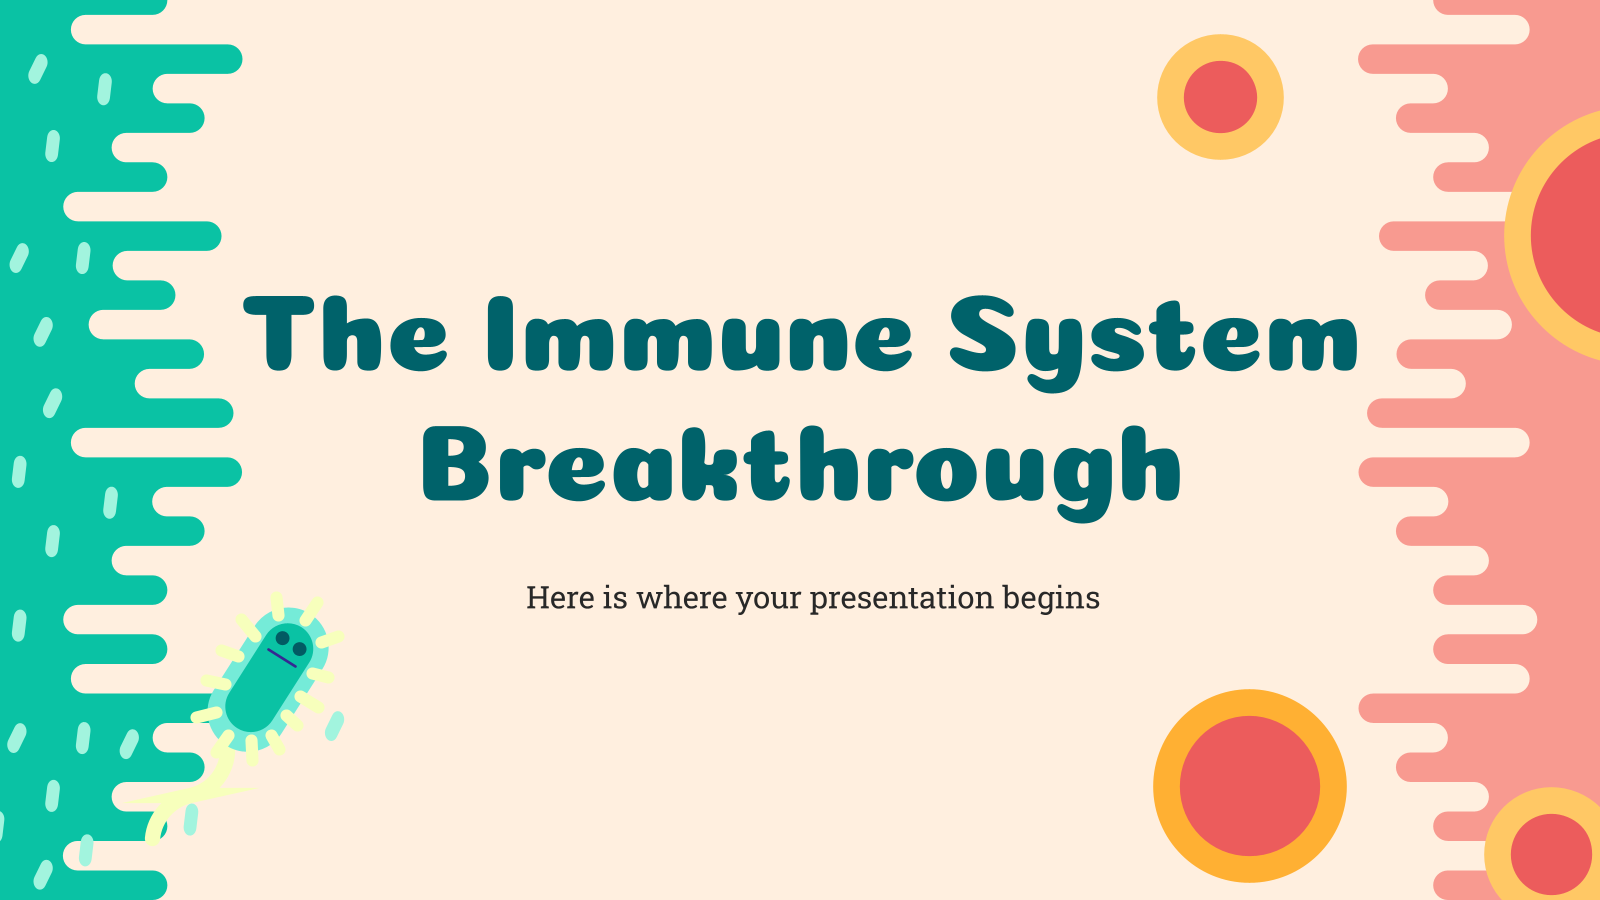 The Immune System Breakthrough presentation template